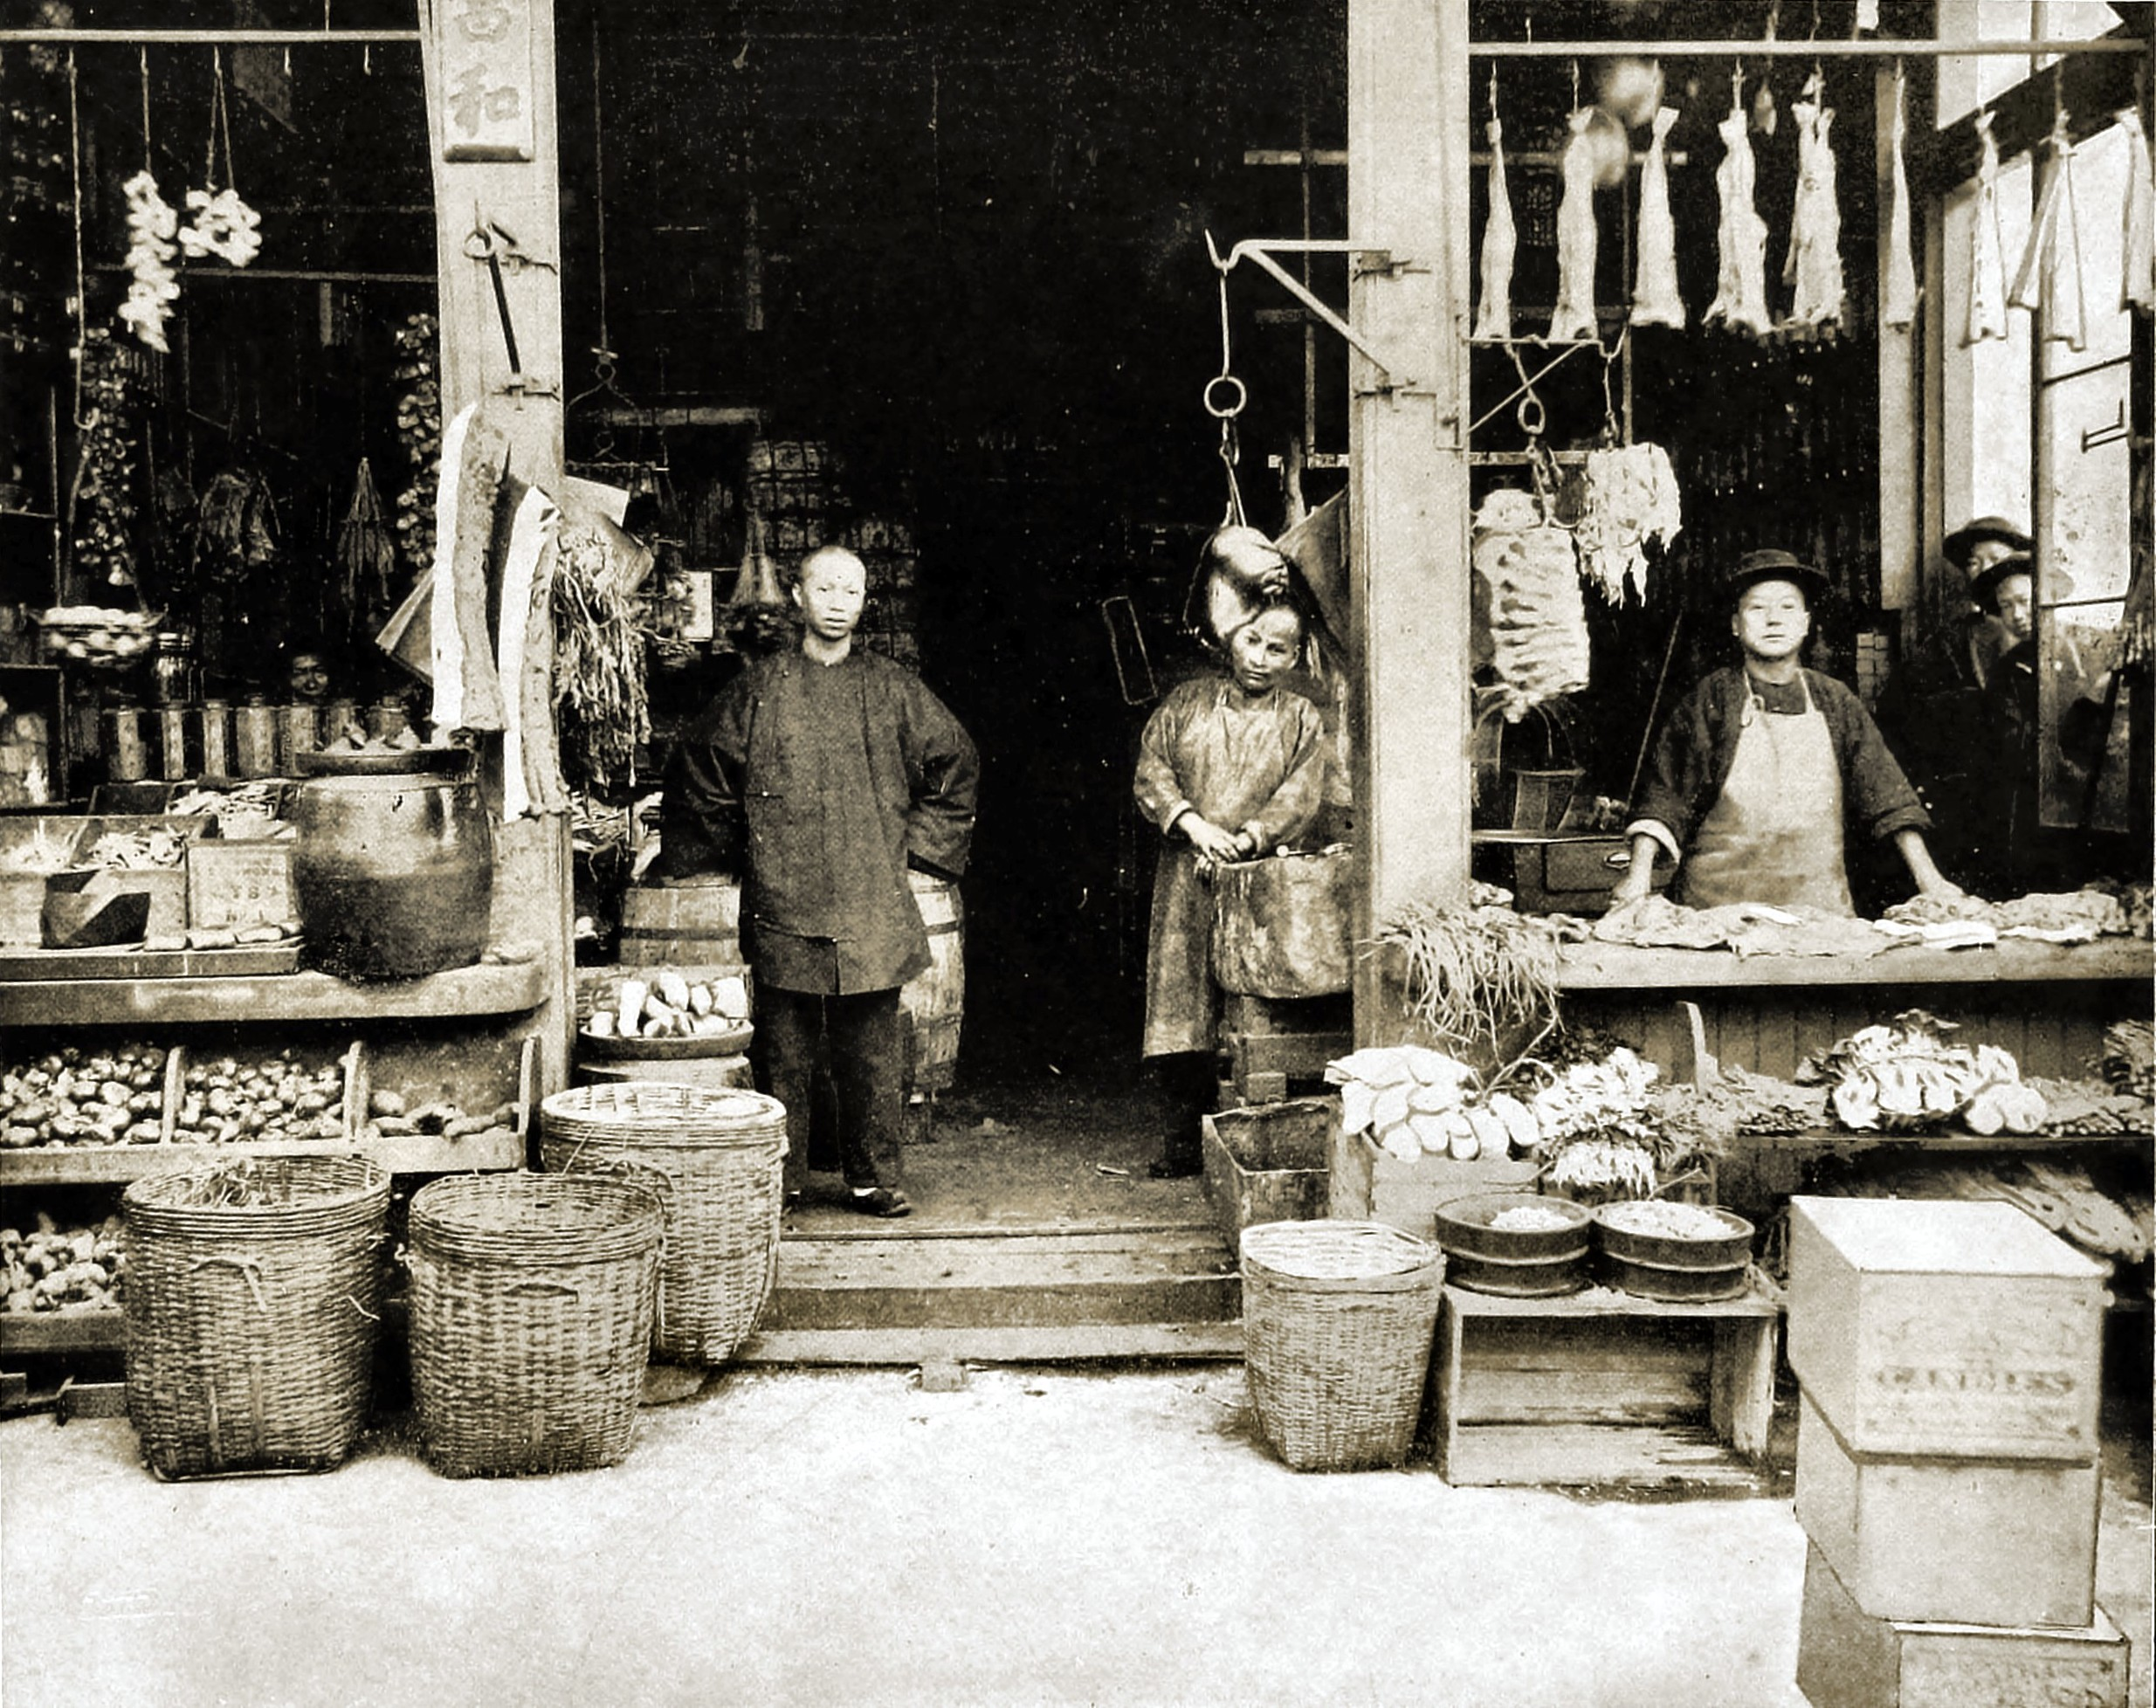 Chinese Shop in Chinatown, San Francisco, California, USA about 1892